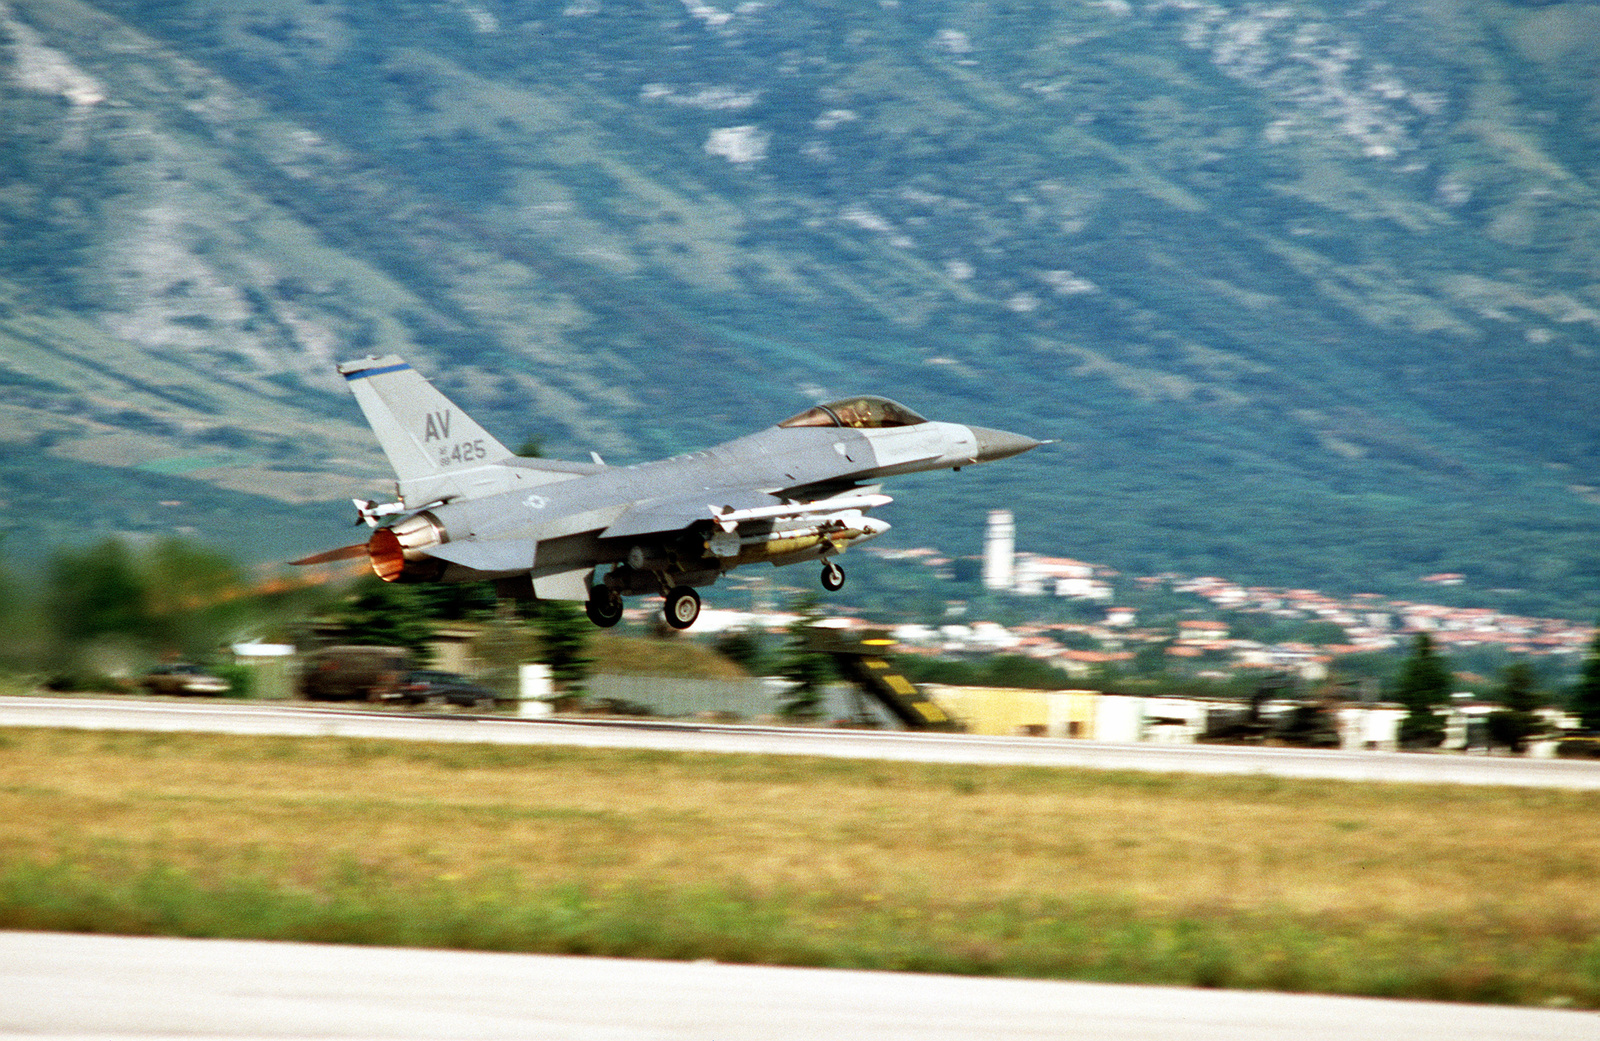 A right side view of a US Air Force F-16C Fighting Falcon aircraft of the 31st Fighter Wing, takes off for a mission in support of NATO airstrikes against the Bosnian Serbs